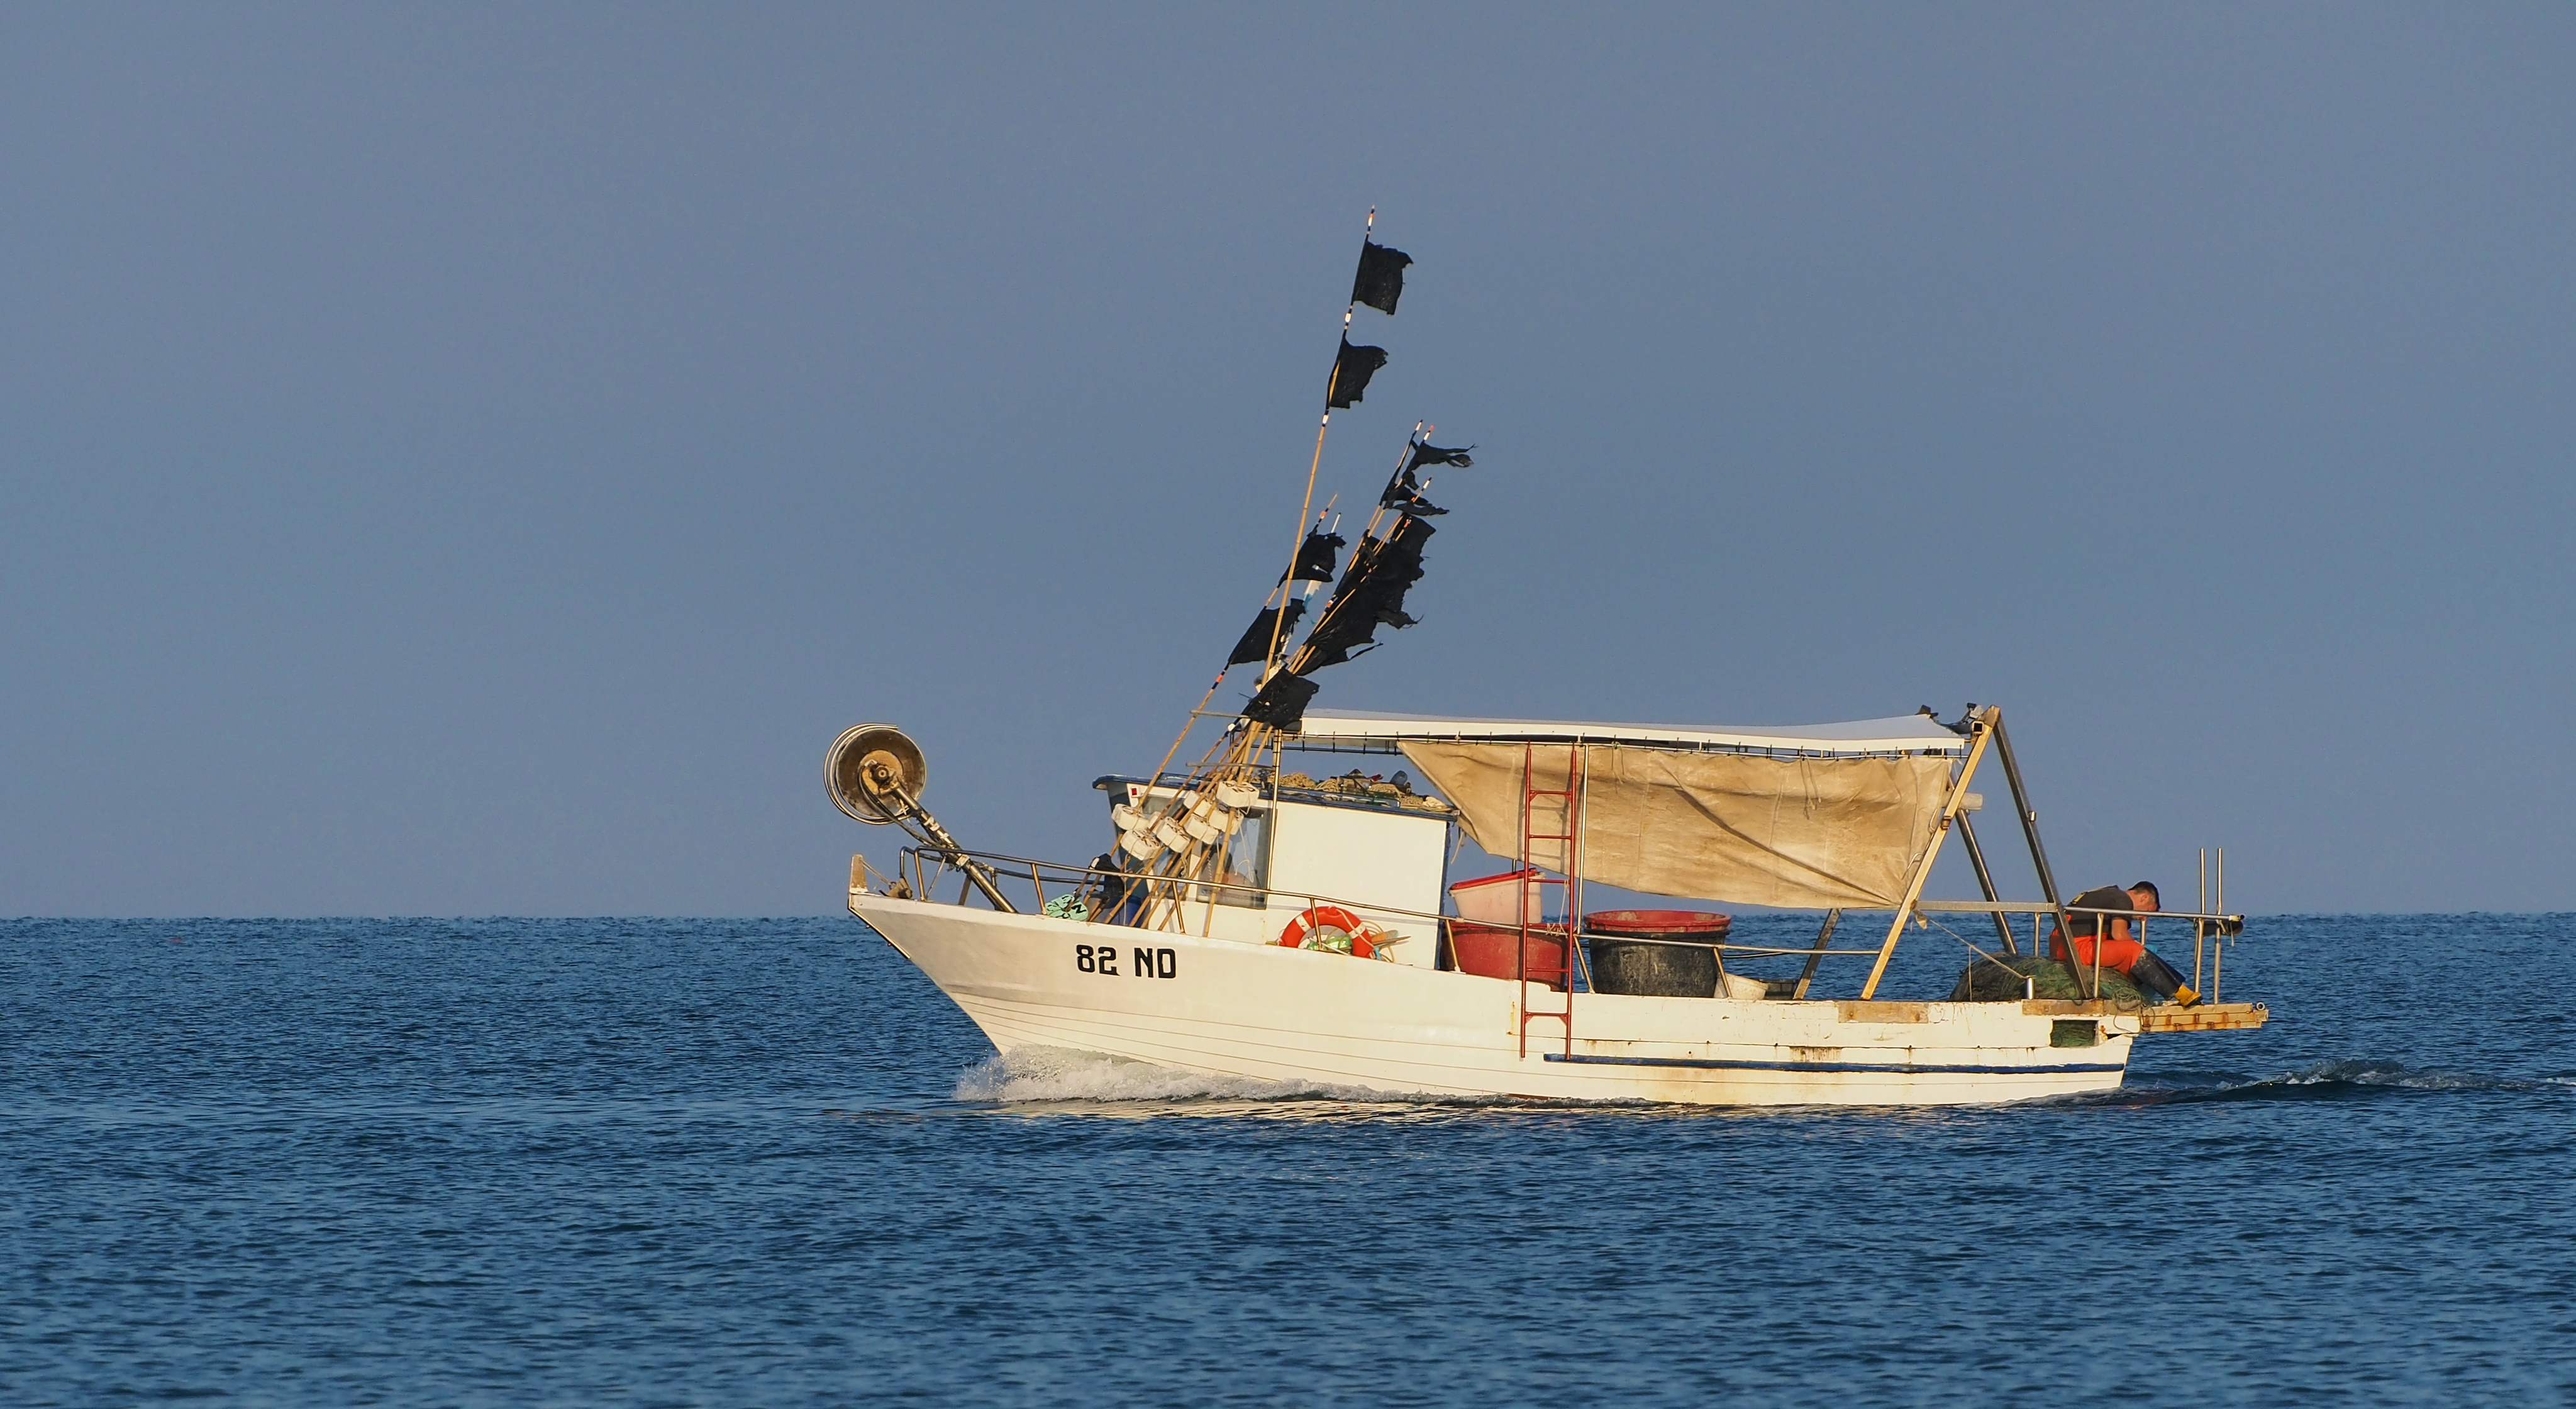 Fishing boat in Adriatic Sea